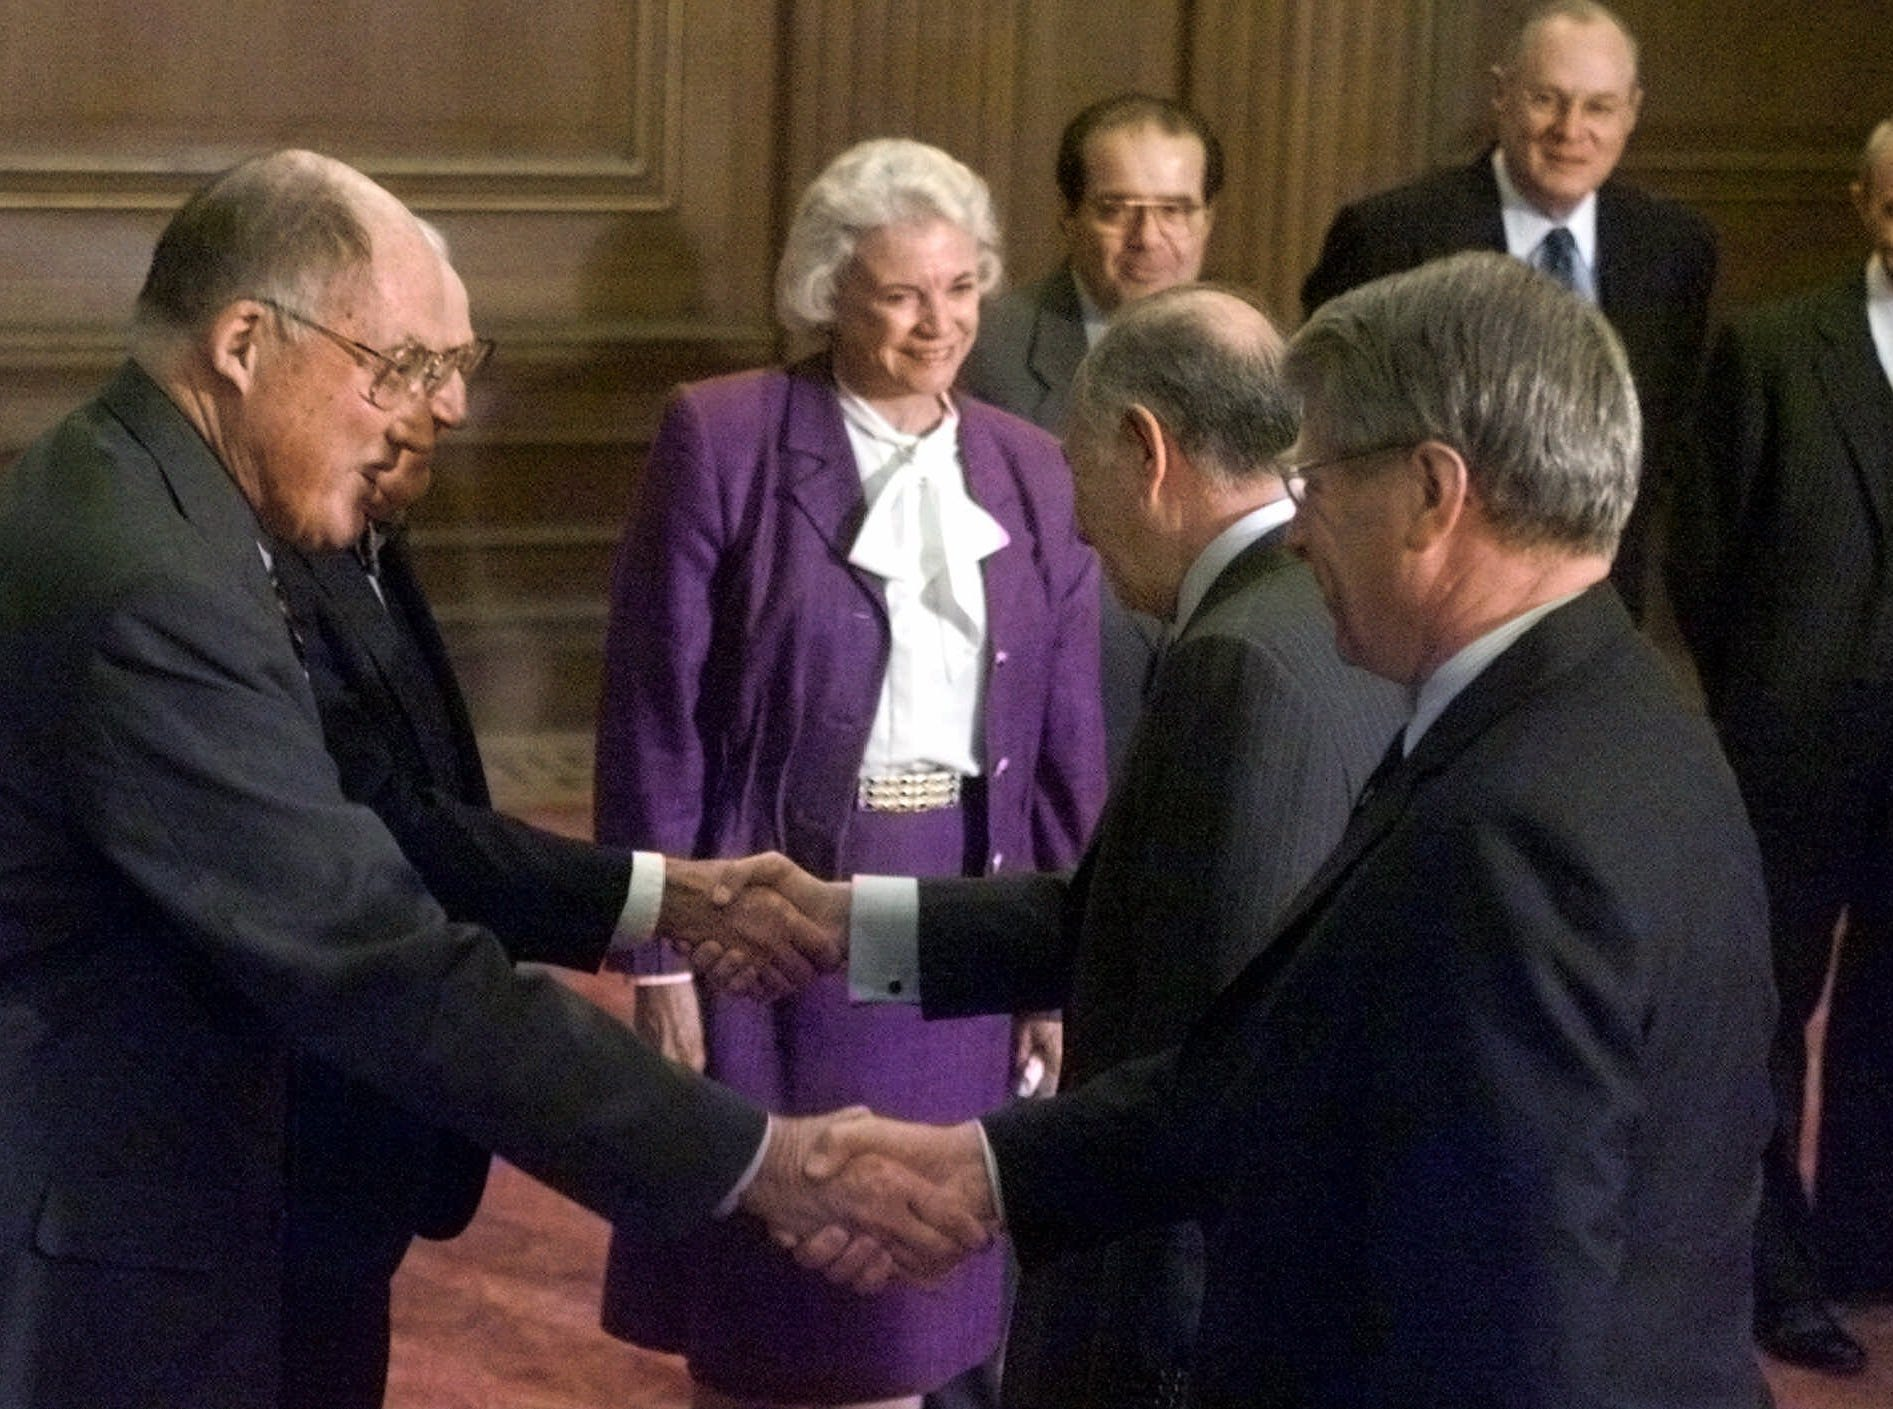 Chief Justice of the US Supreme Court William Rehnquist, left, and Associate Justice John Paul Stevens, partially visible on left, shake hands with the President of the Court of Justice of the European Communities, Spain's Gil Carlos Rodriguez Iglesias, center back, and President of the Fourth and Fifth Chambers of the Court of Justice, Britain's David Edward, during their visit to the Supreme Court in Washington, Tuesday April 18, 2000. Standing at back from left are Supreme Court Justices Sandra Day O'Connor, Antonin Scalia, Anthony Kennedy, and David Souter.